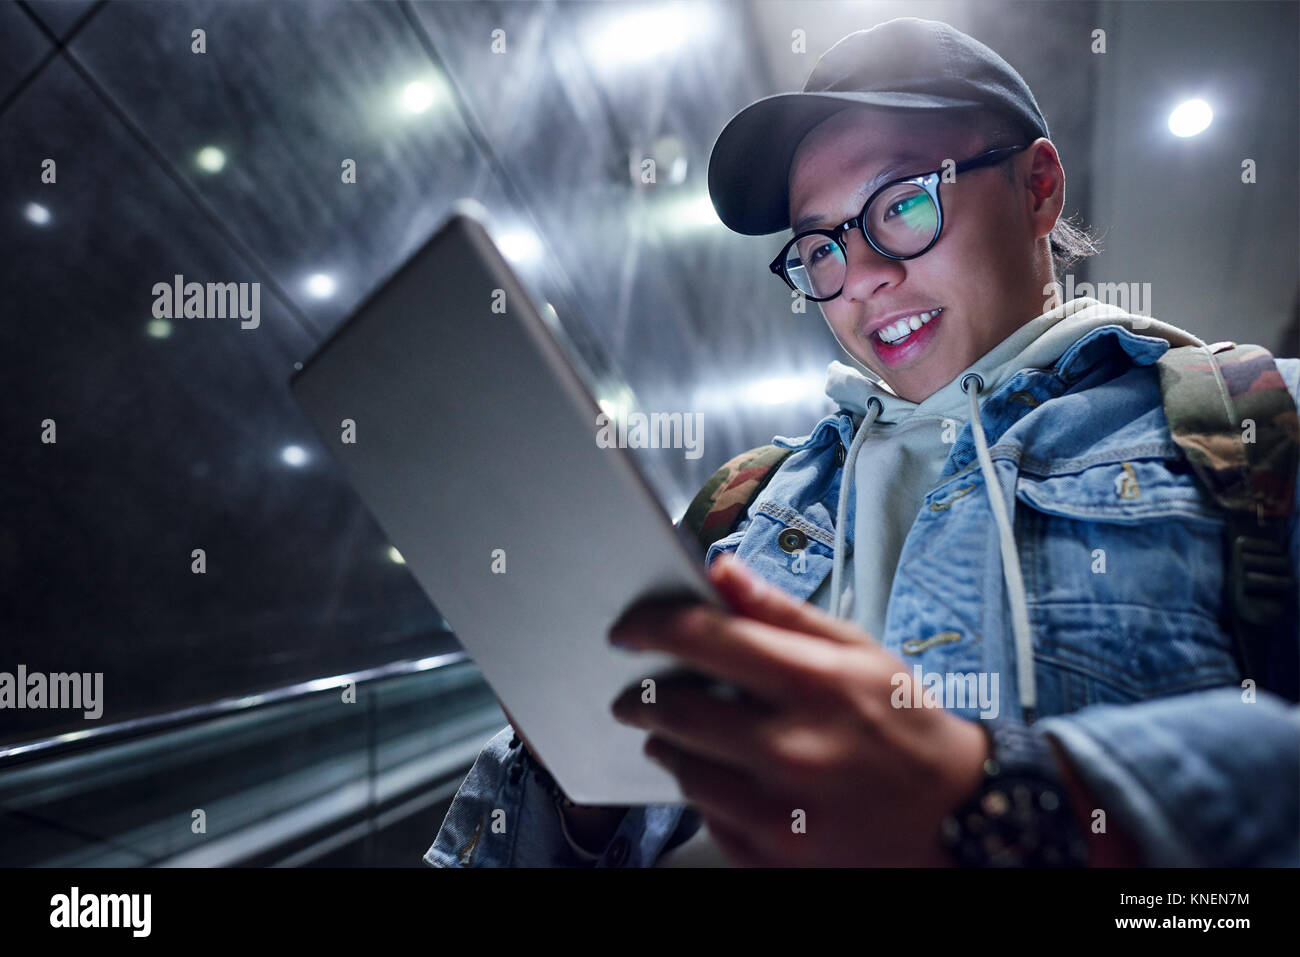 Young man moving down underground station escalator  looking at digital tablet - Stock Image